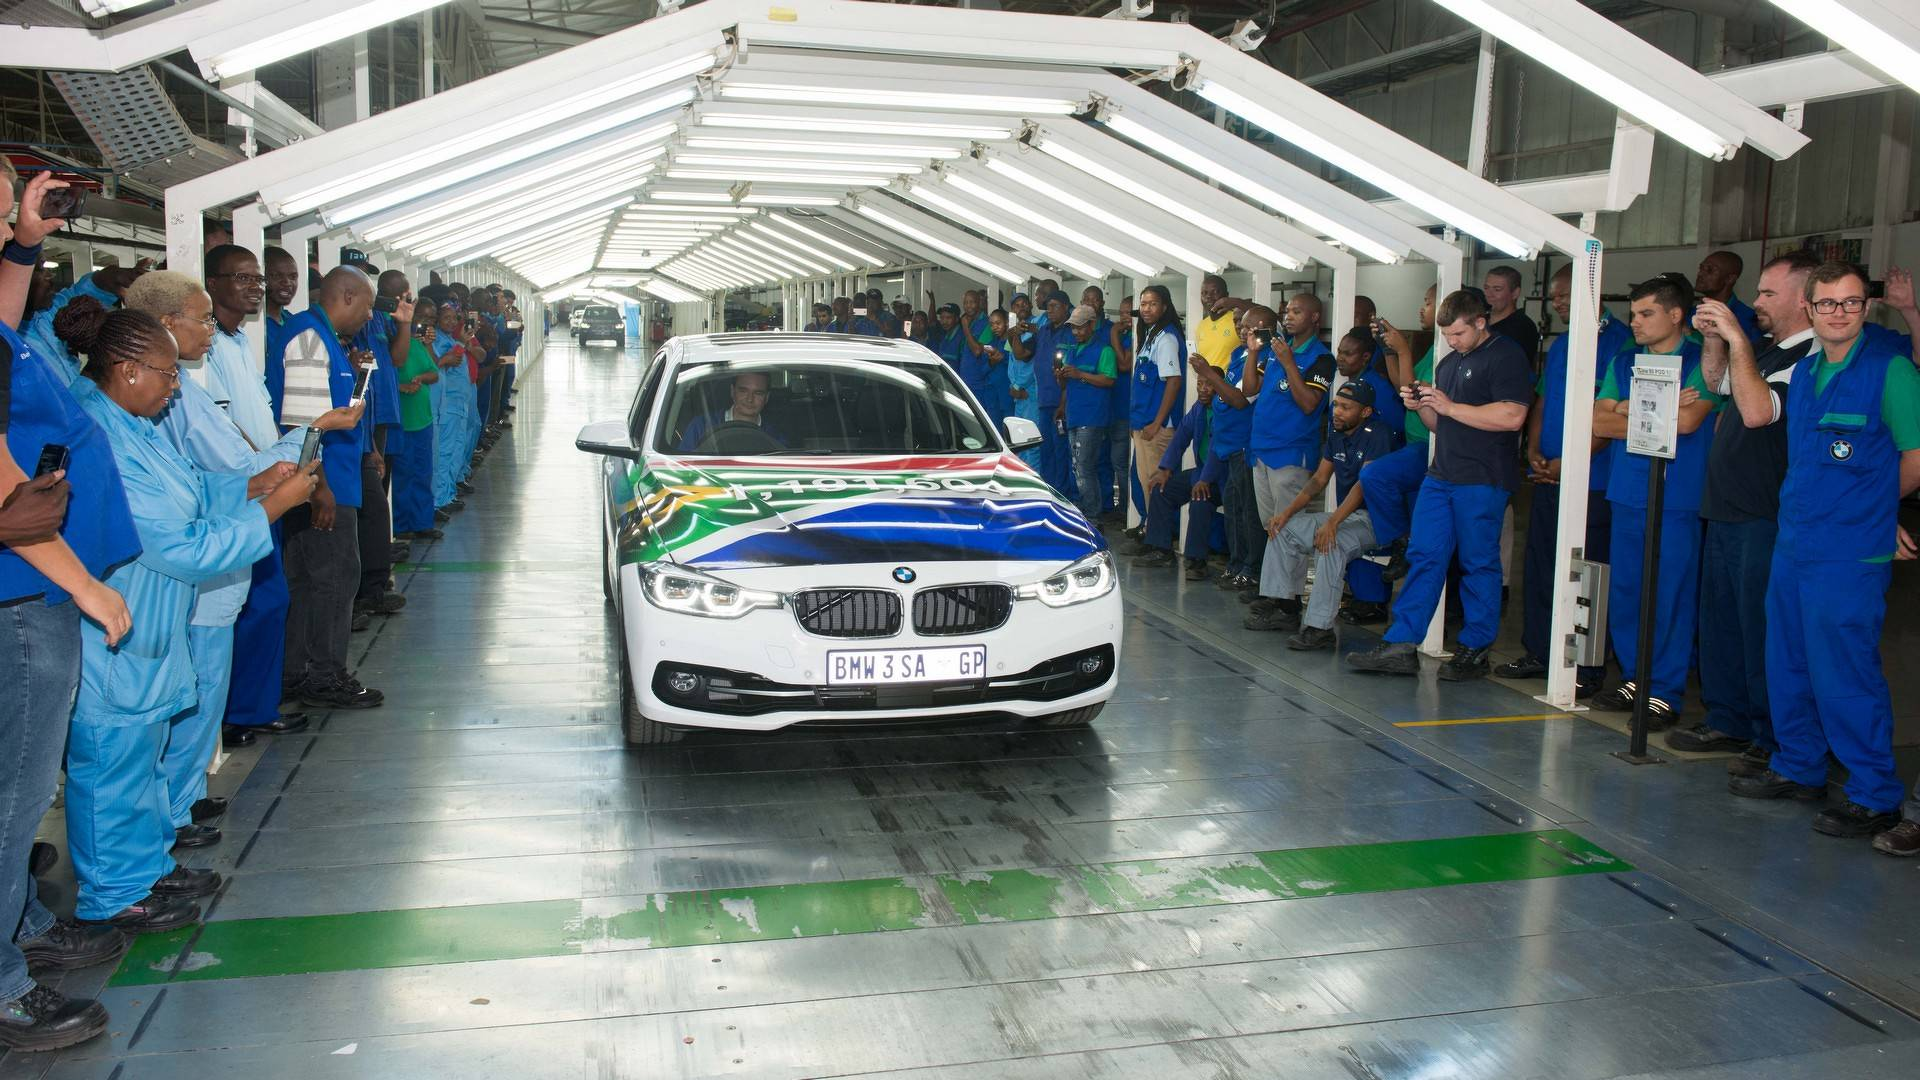 BMW_3_Series_built_Rosslyn_factory_South_Africa_0001